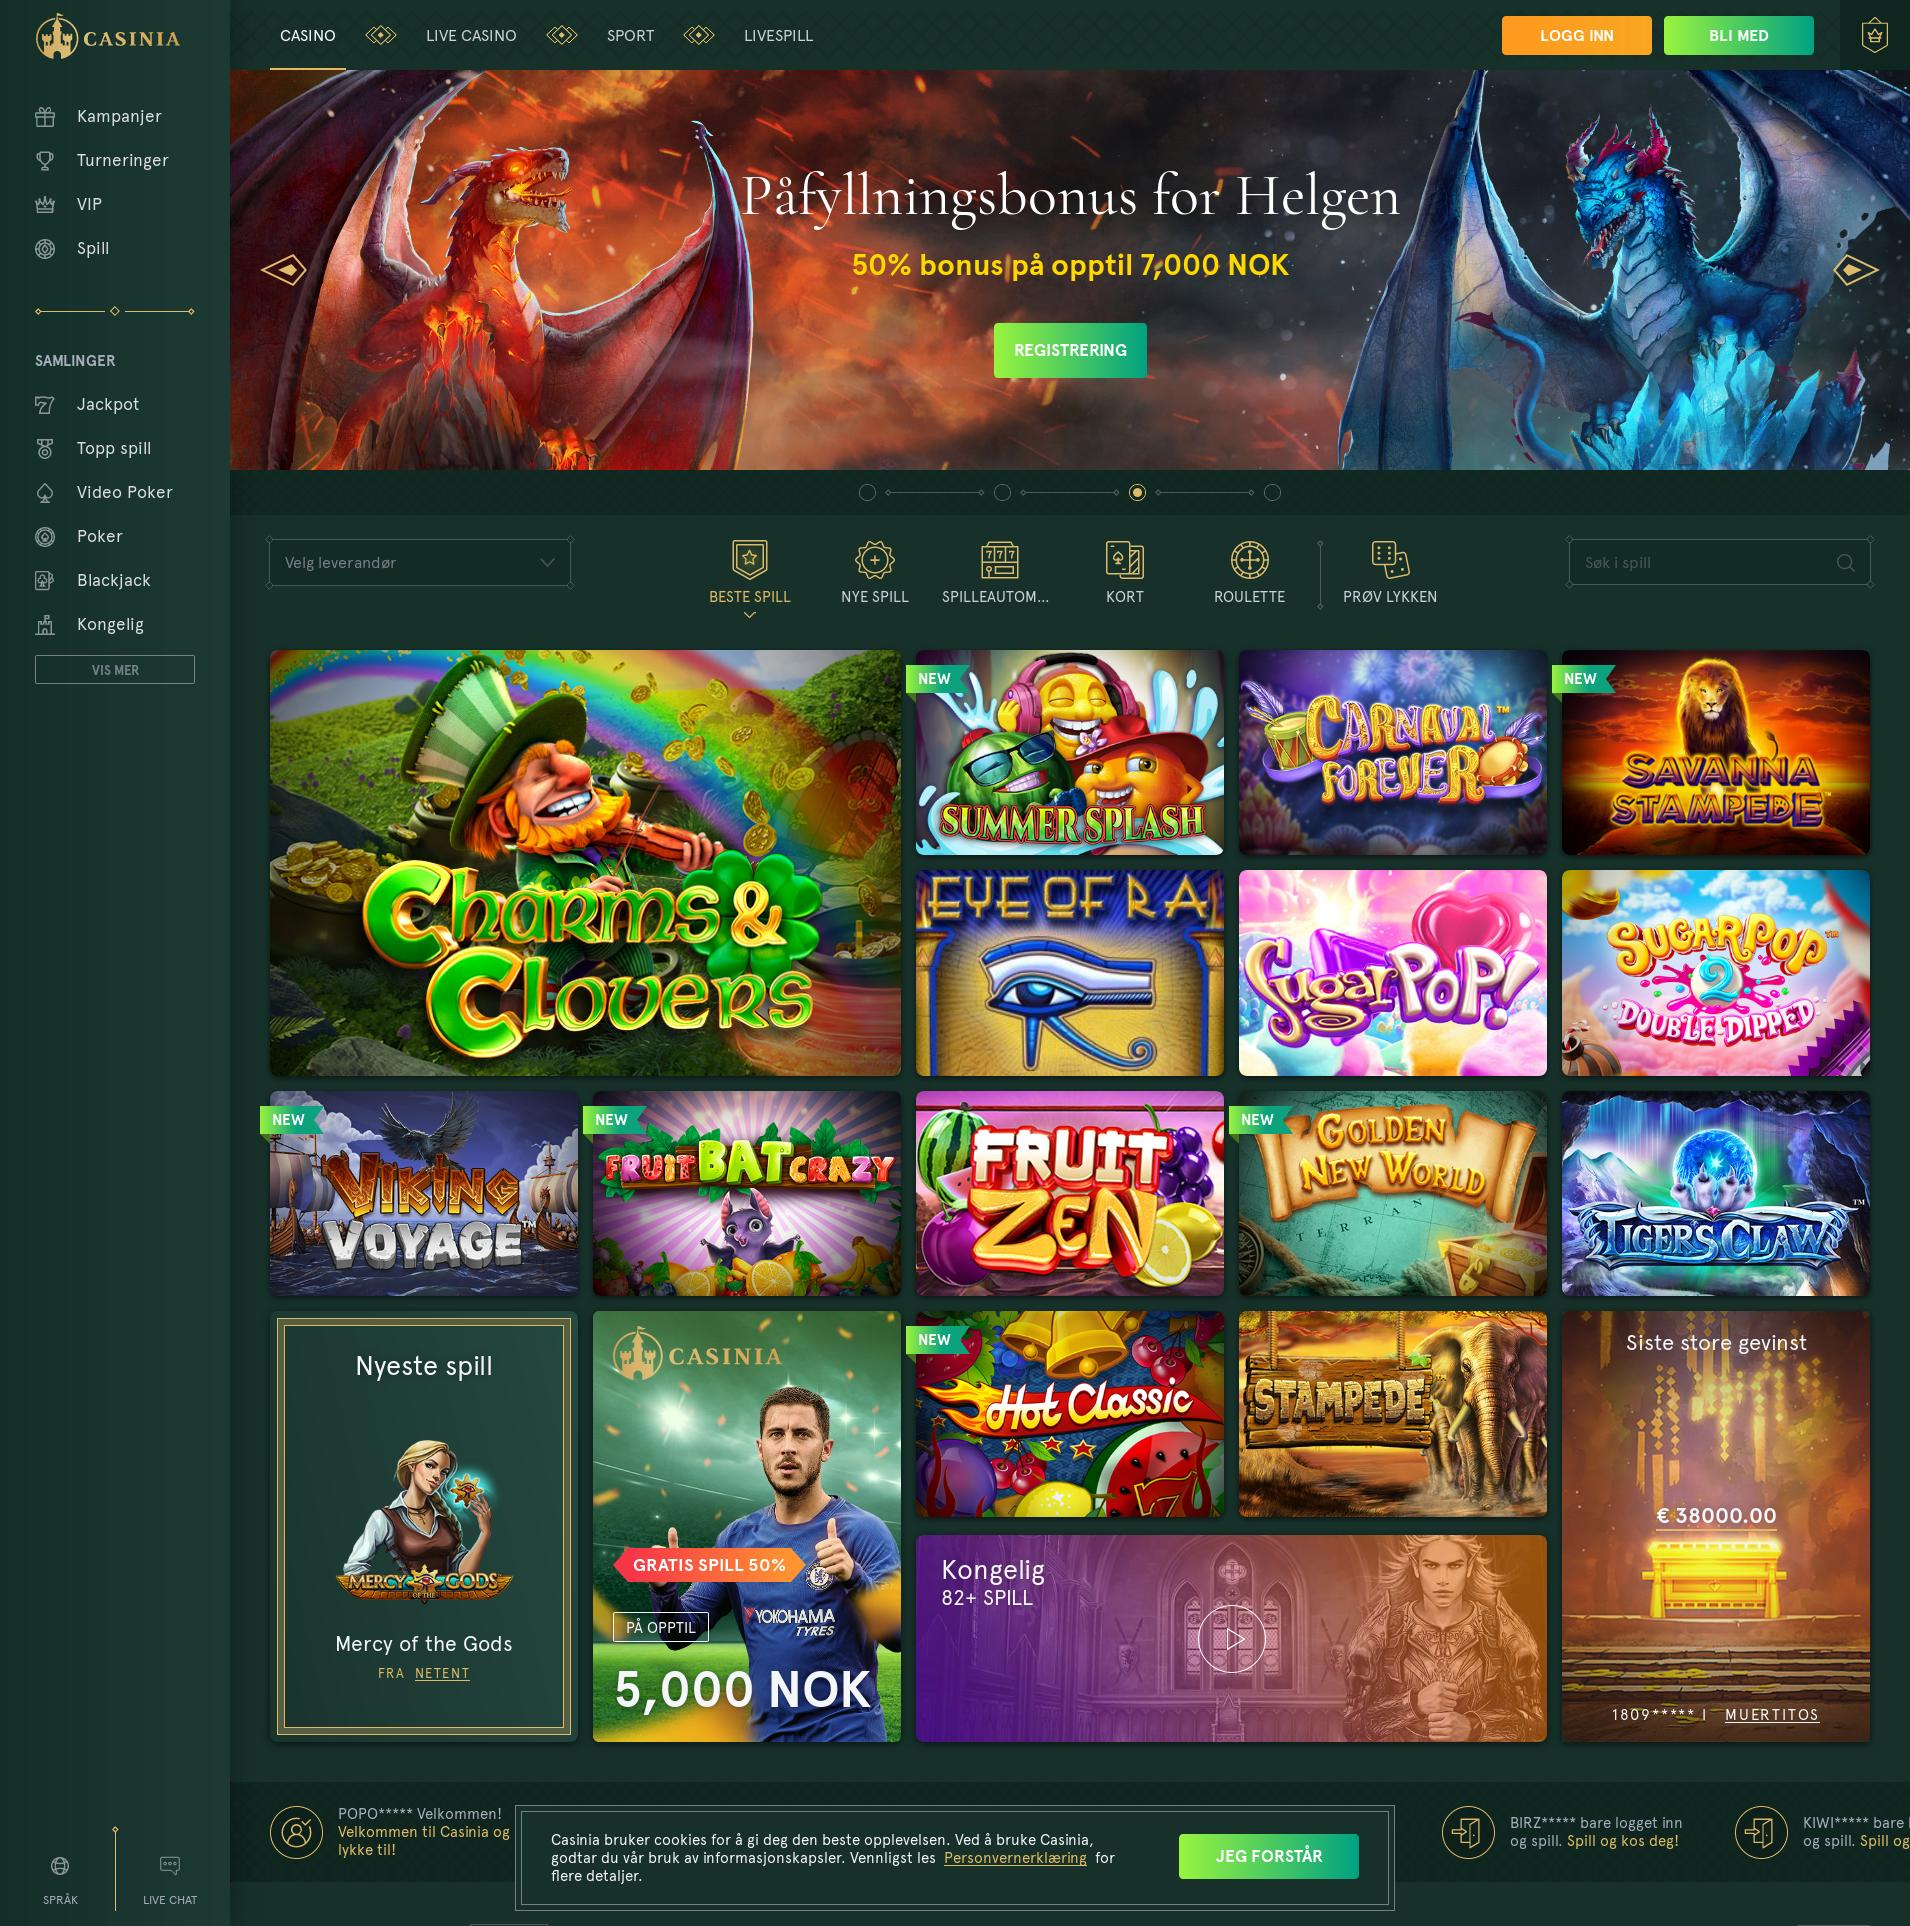 Casino screen Lobby 2019-07-22 for Russian Federation